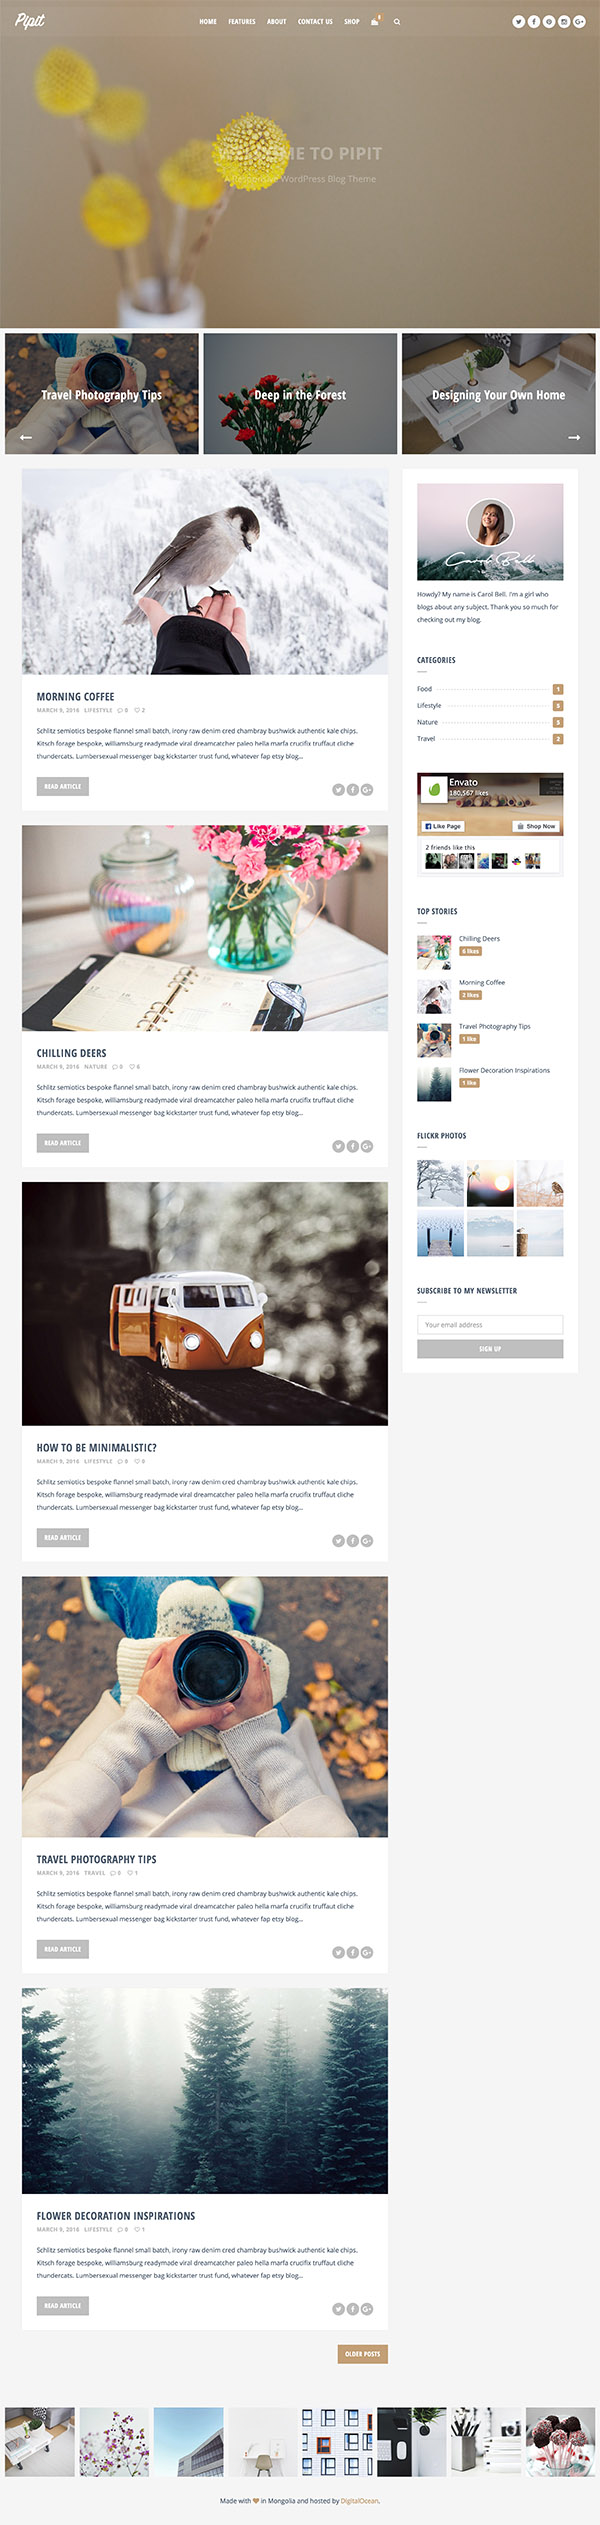 06 Pipit - A Responsive WordPress Blog Theme